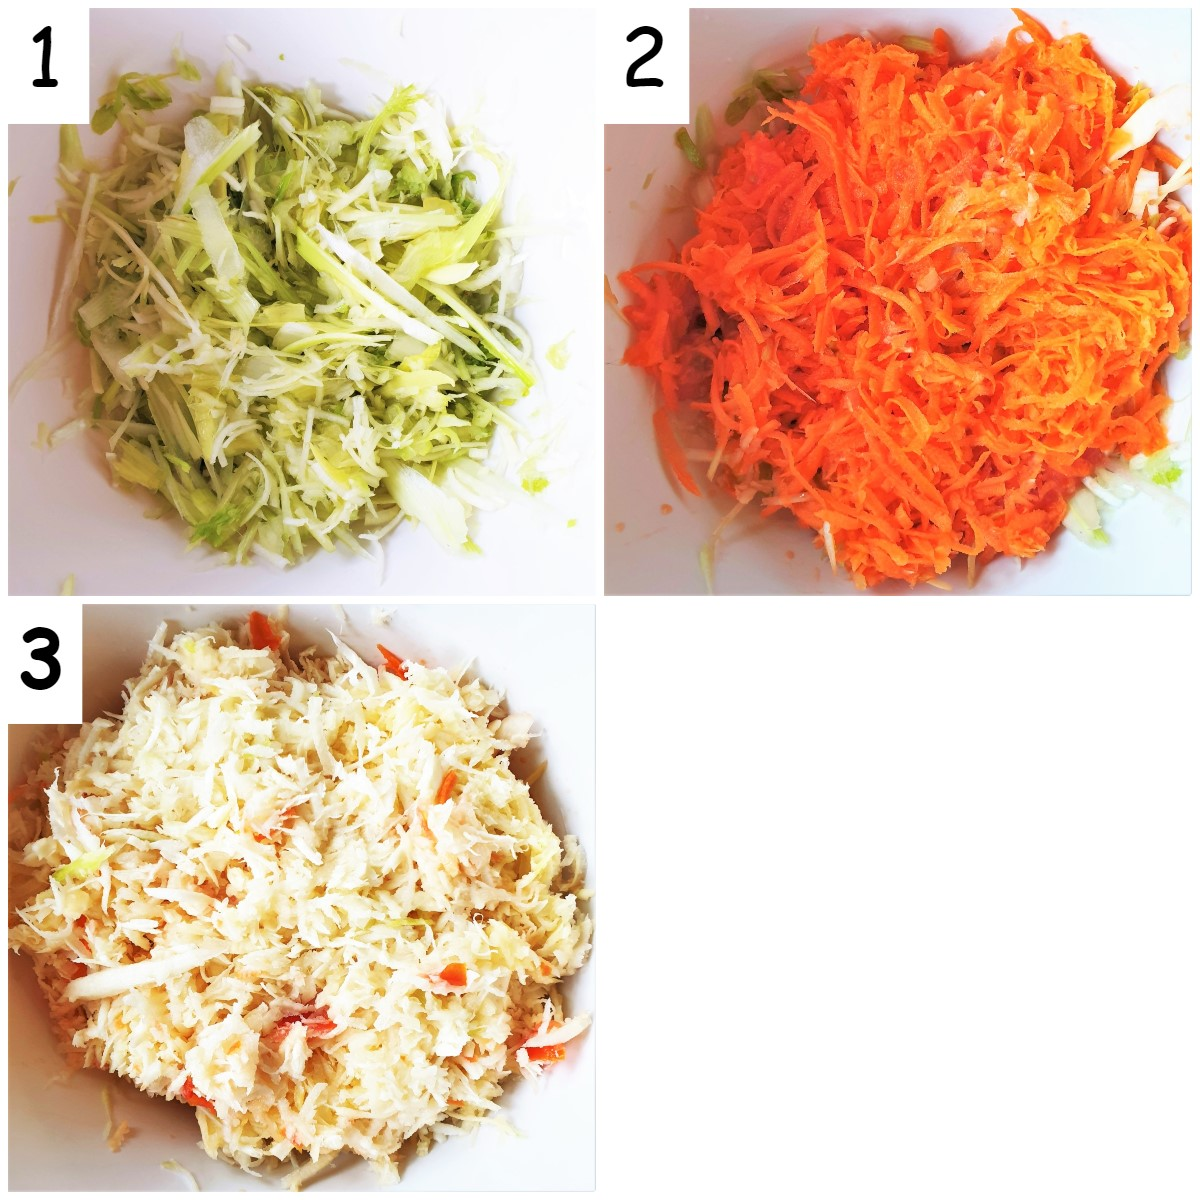 Three images showing shredded and grated vegetables.